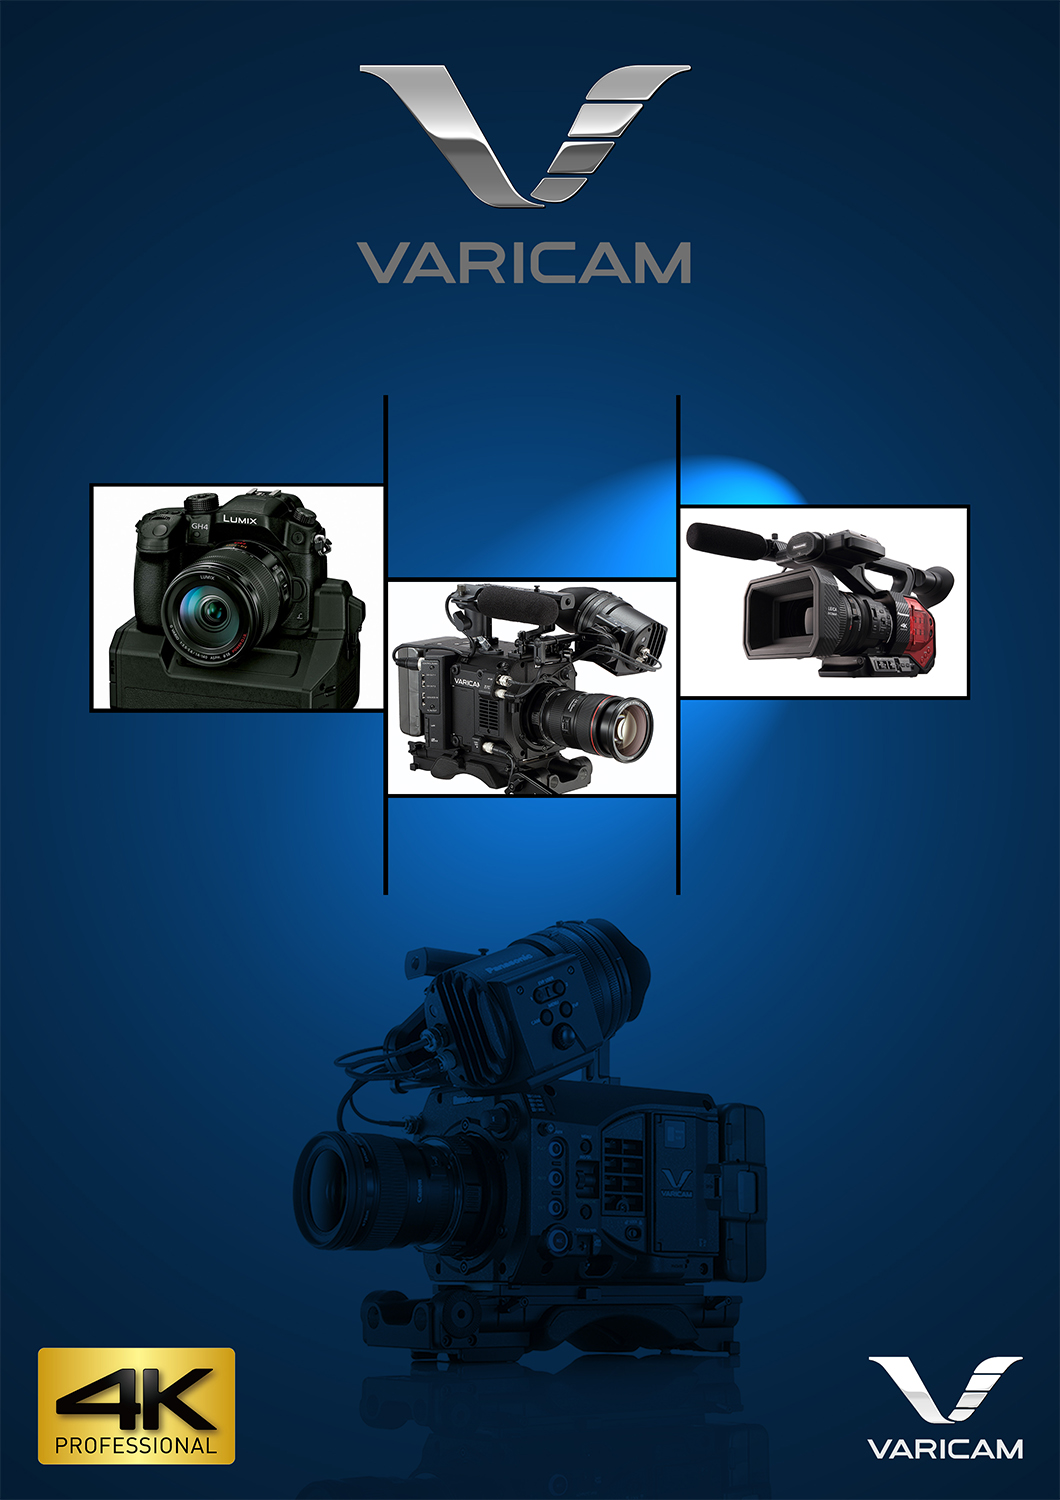 Advertisement Design By Bright Star For Pro Video Systems